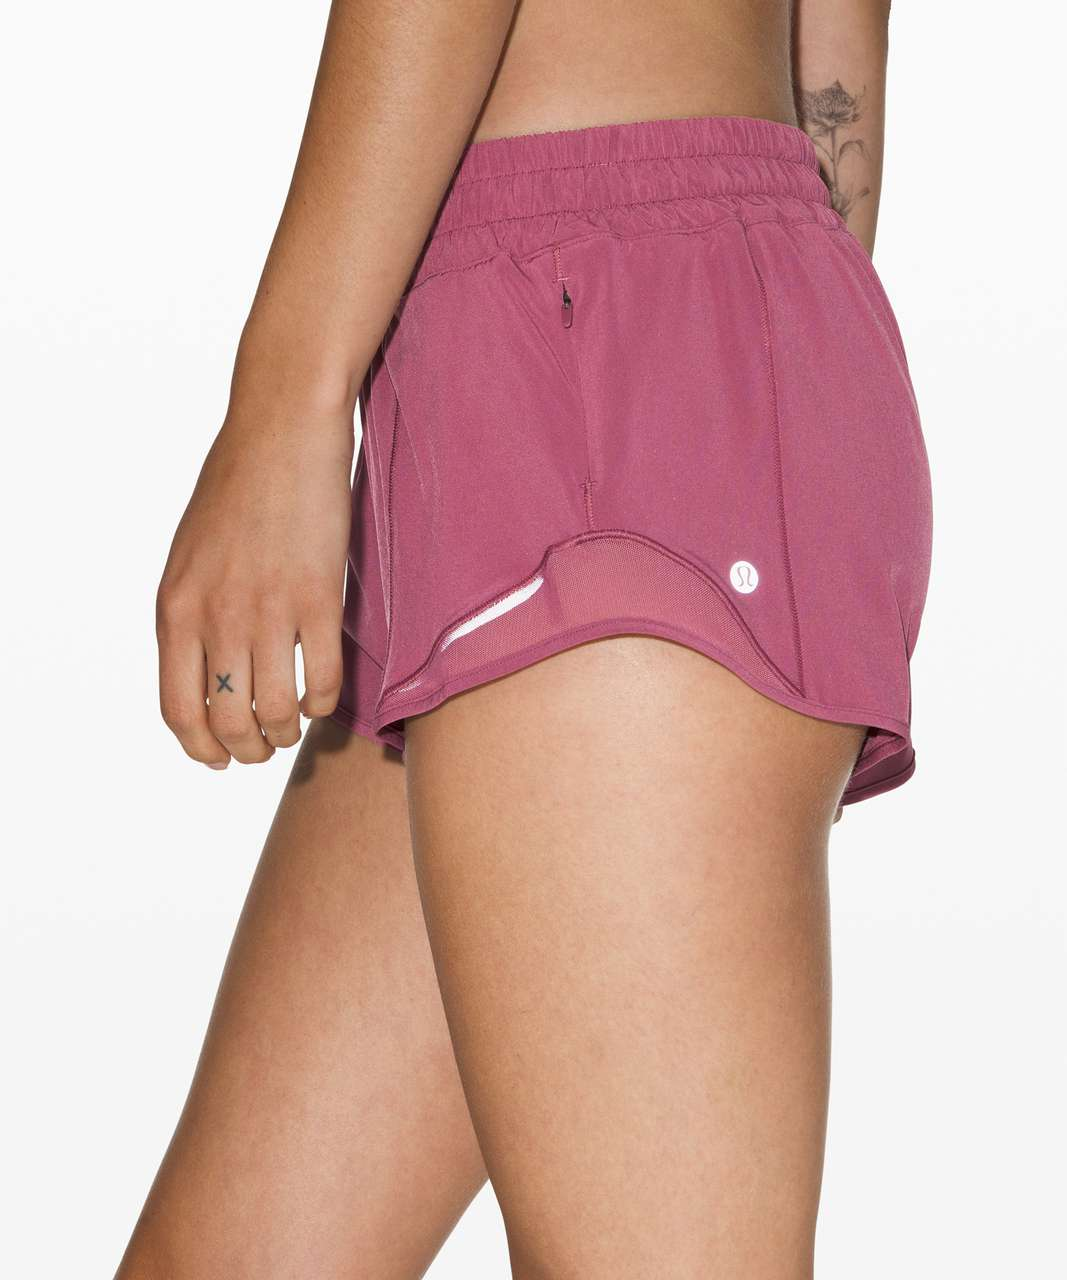 "Lululemon Hotty Hot Short II *2.5"" - Plumful"